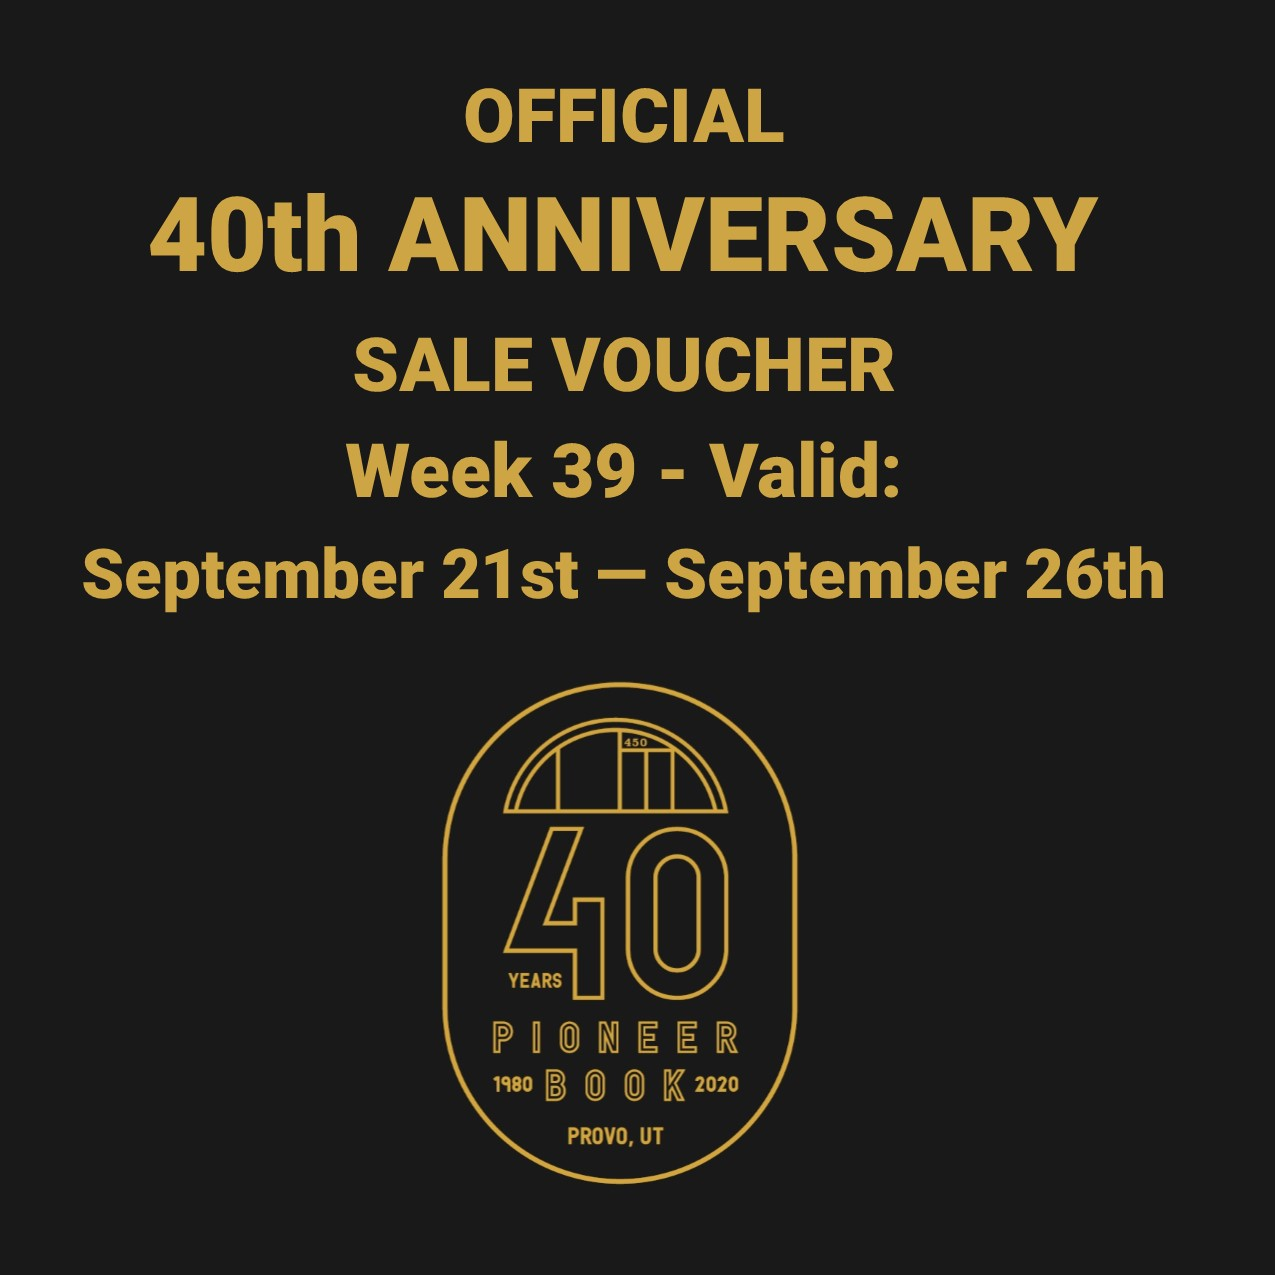 Image for 40th Anniversary Sale! Voucher - Week 39: September 21st - September 26th